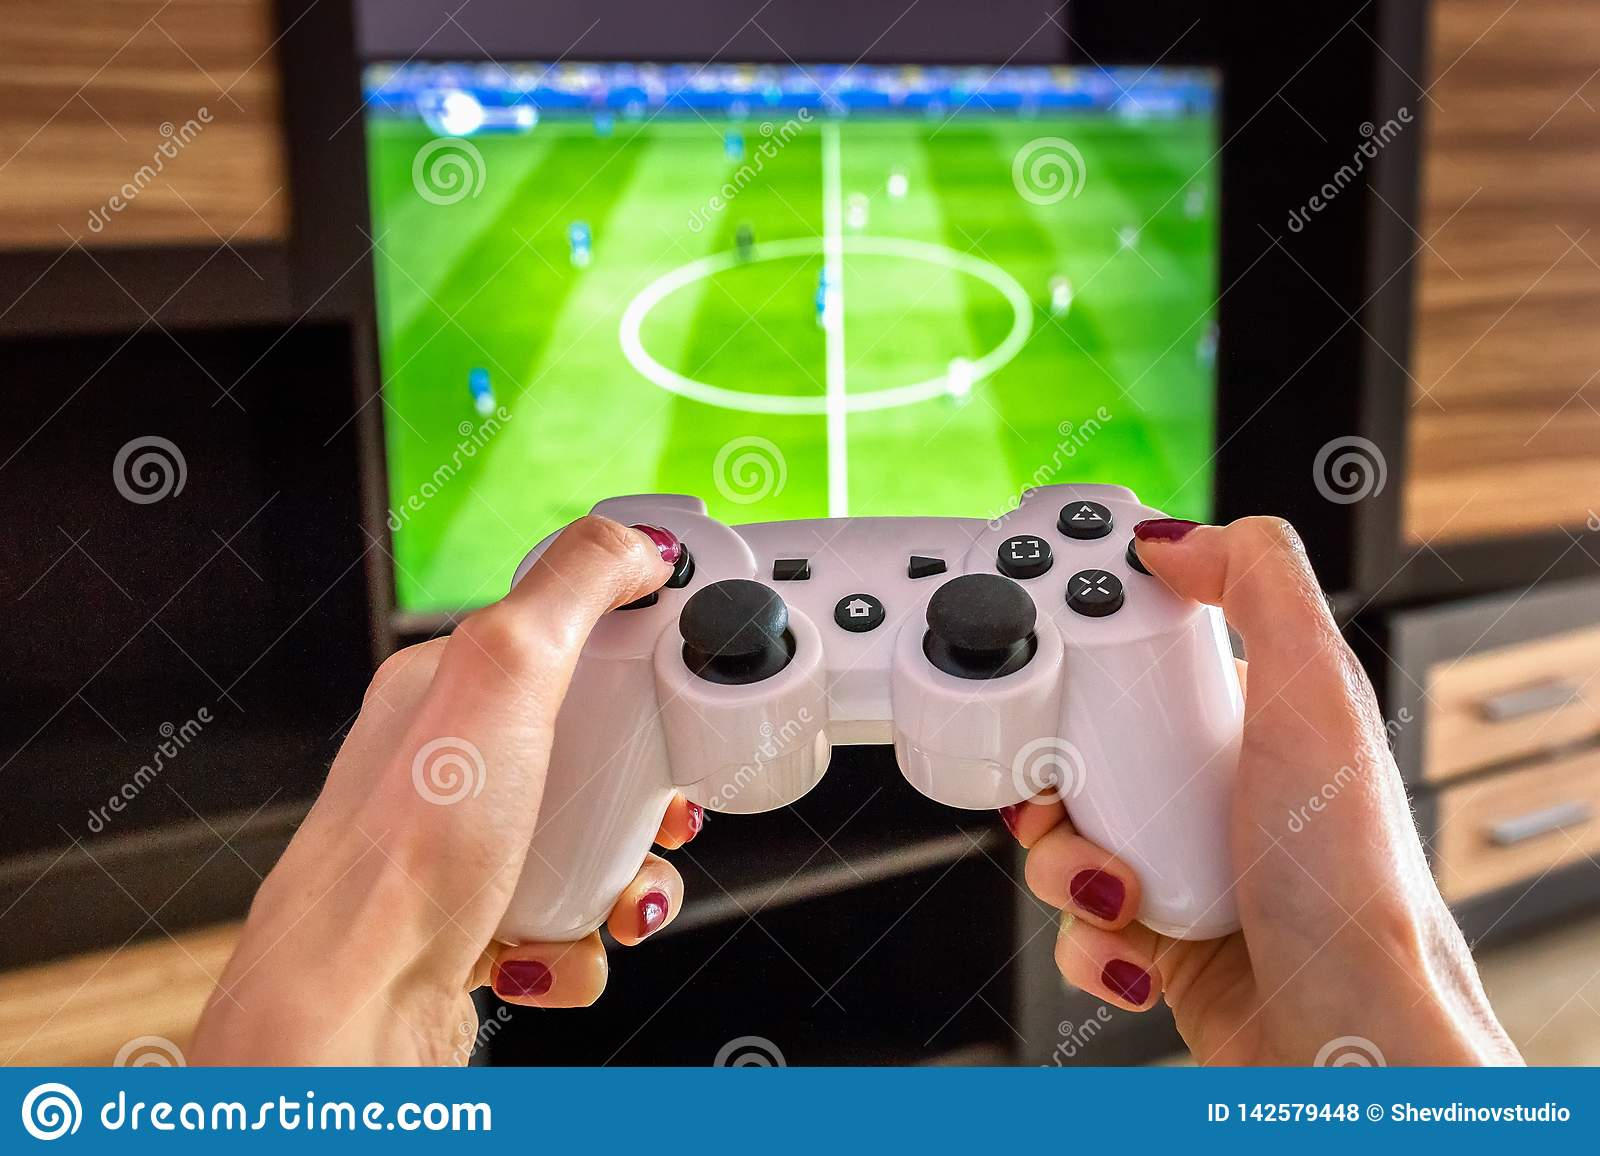 Ps4 Images - Download 910 Royalty Free Photos - Page 4